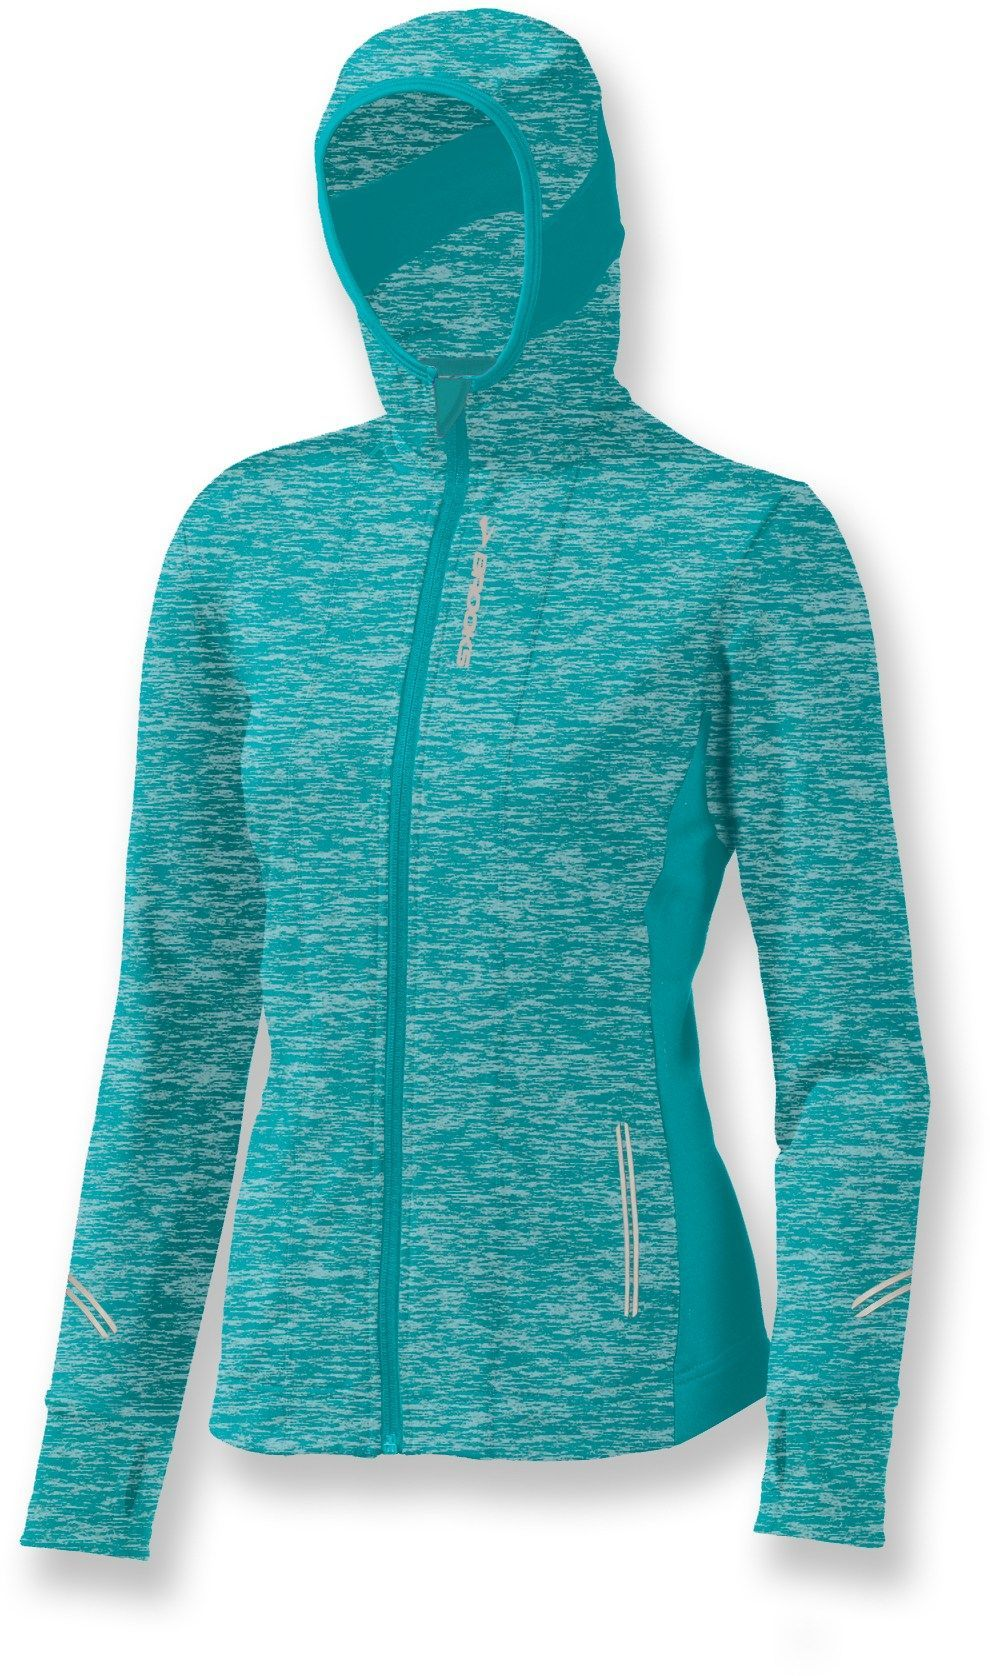 25 Fascinating Brooks Running Jacket Mens Ideas